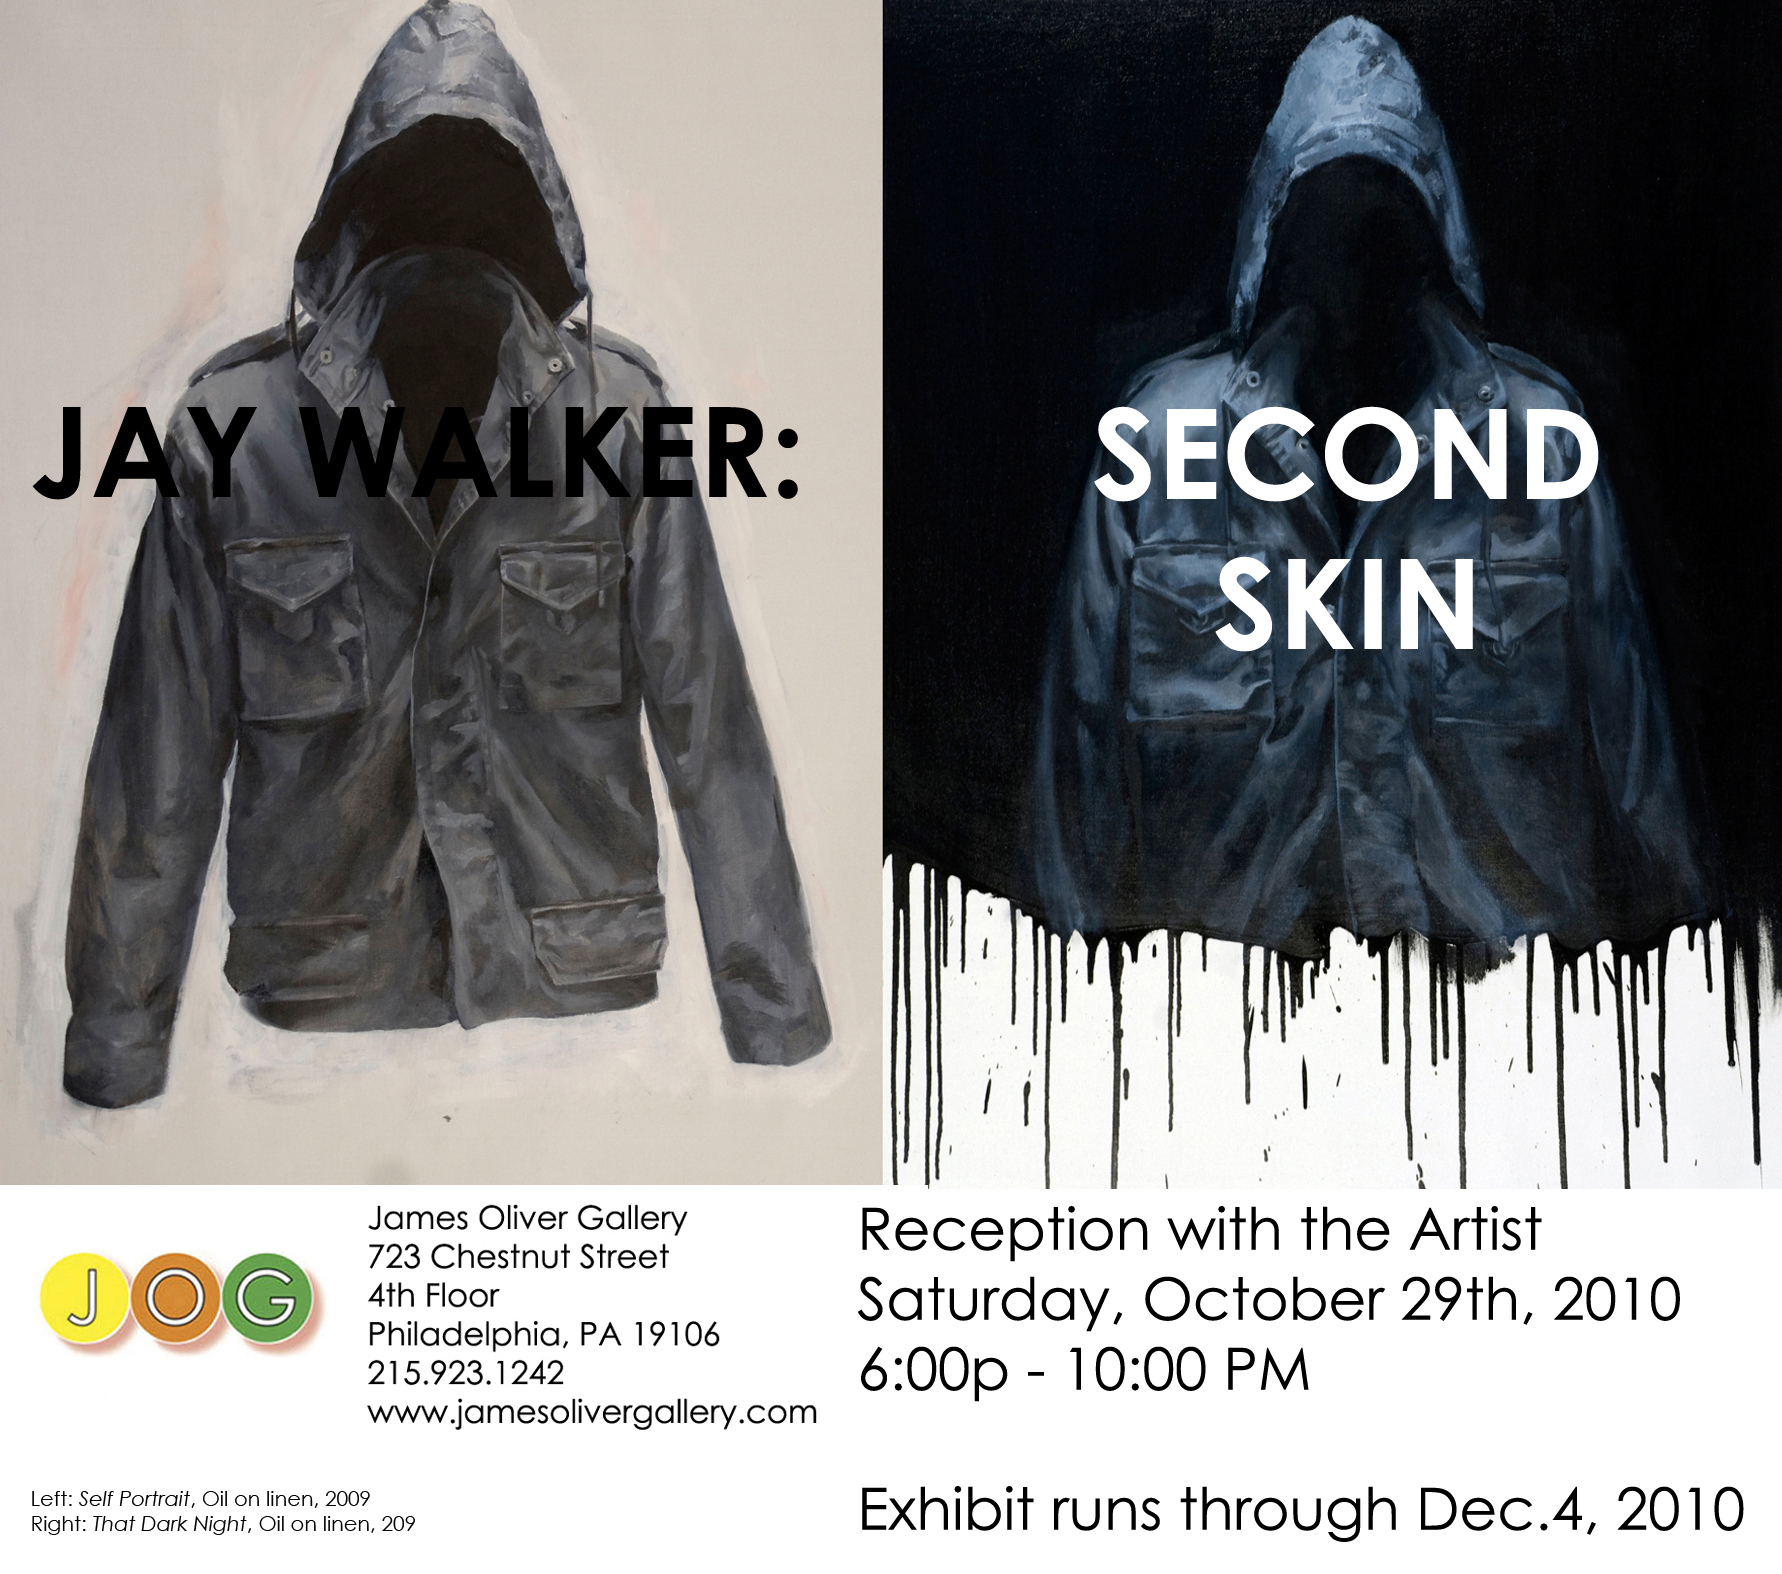 JOGshowcards-secondskin-2010